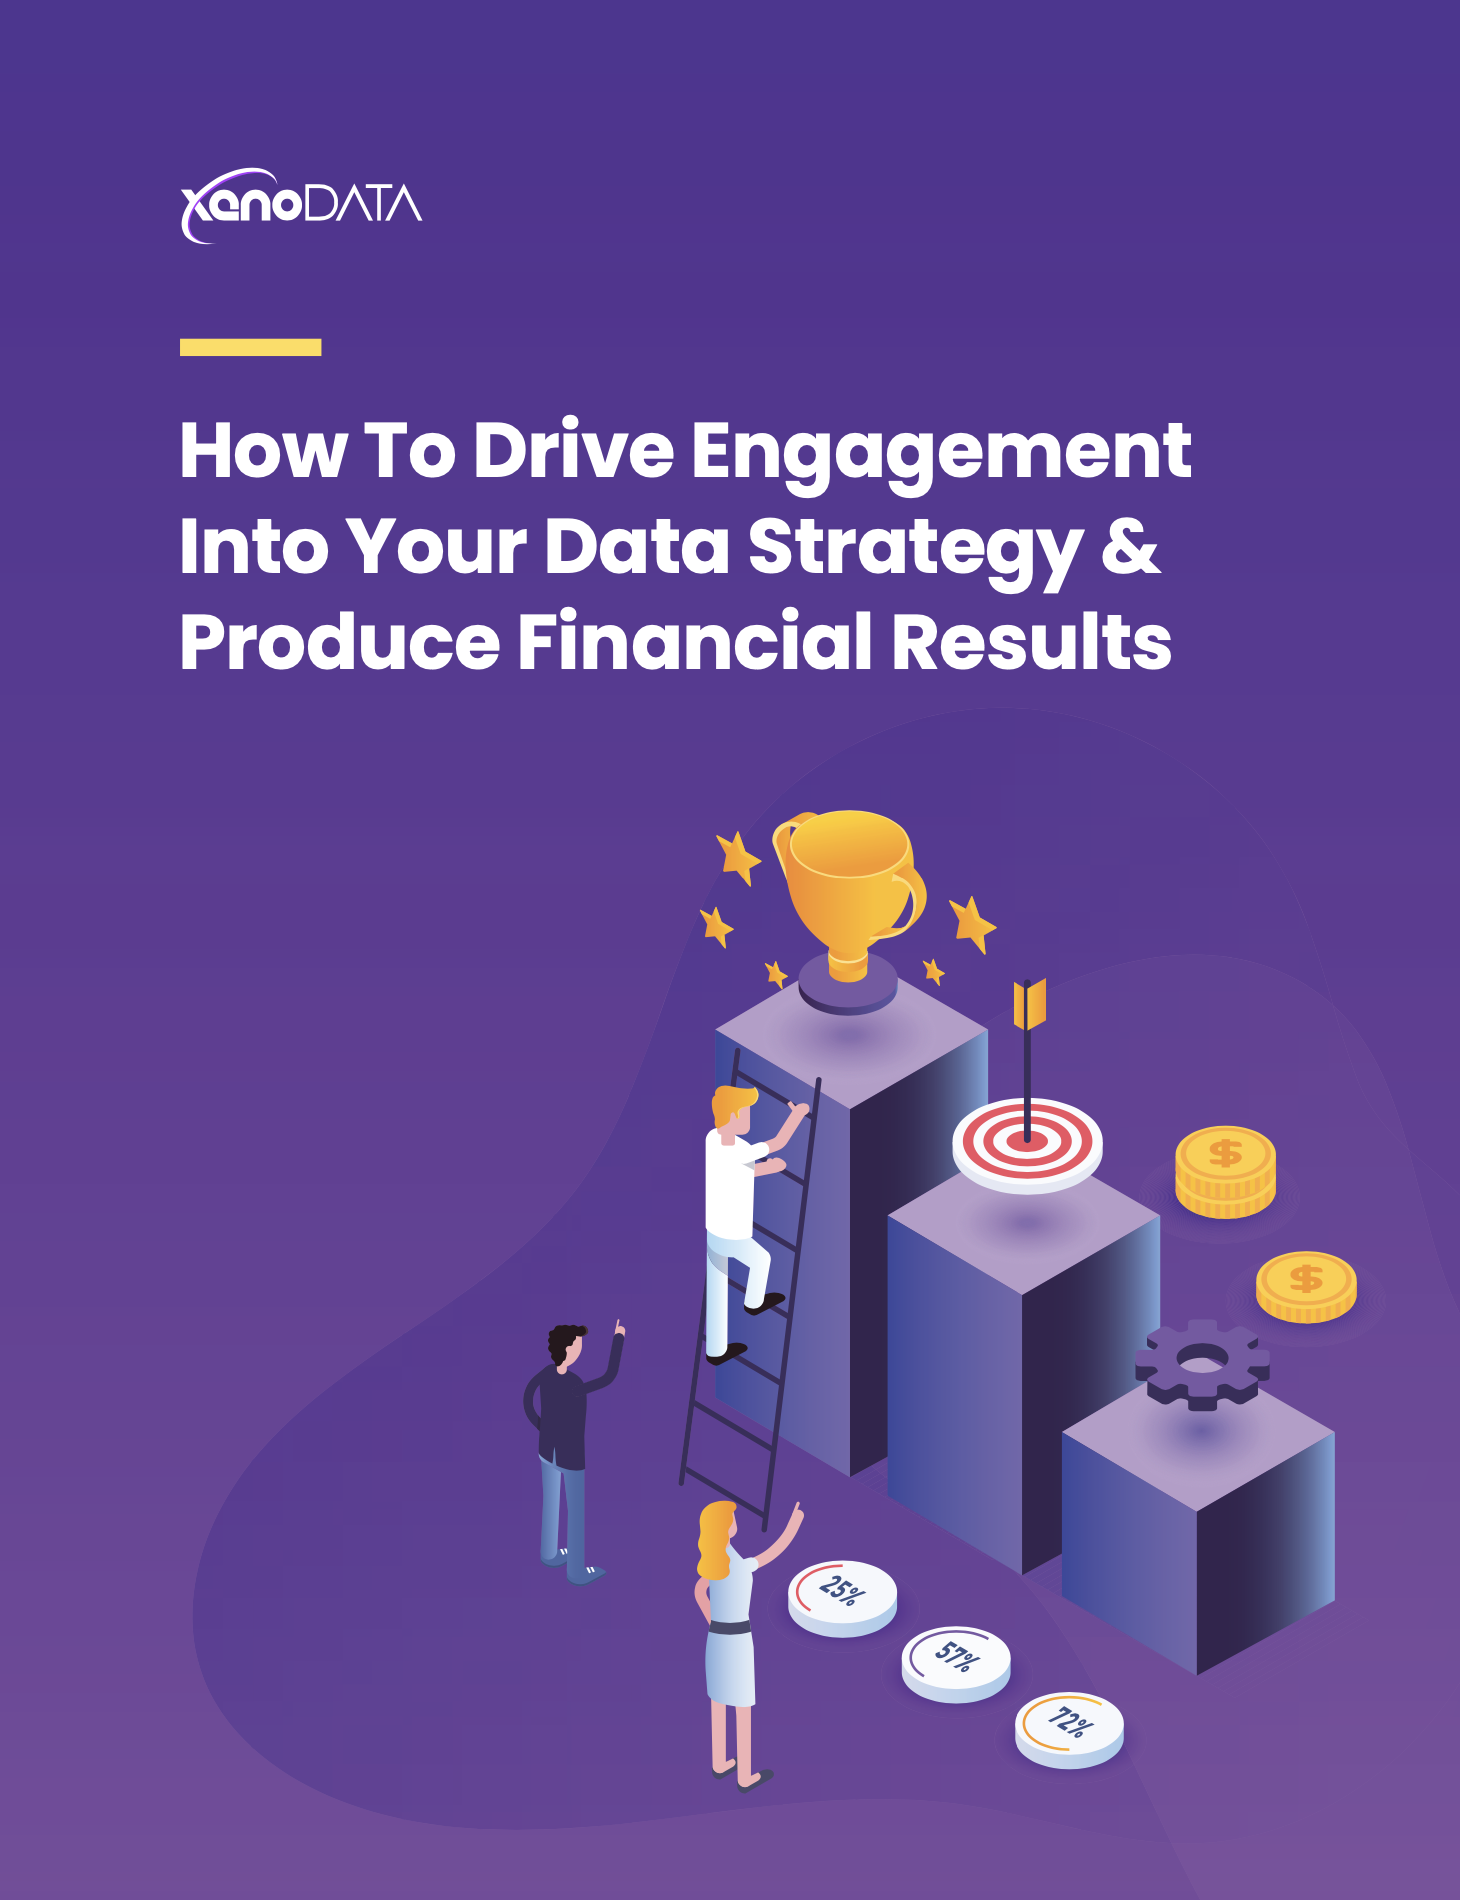 How To Drive Engagement Into Your Data Strategy & Produce Financial Results